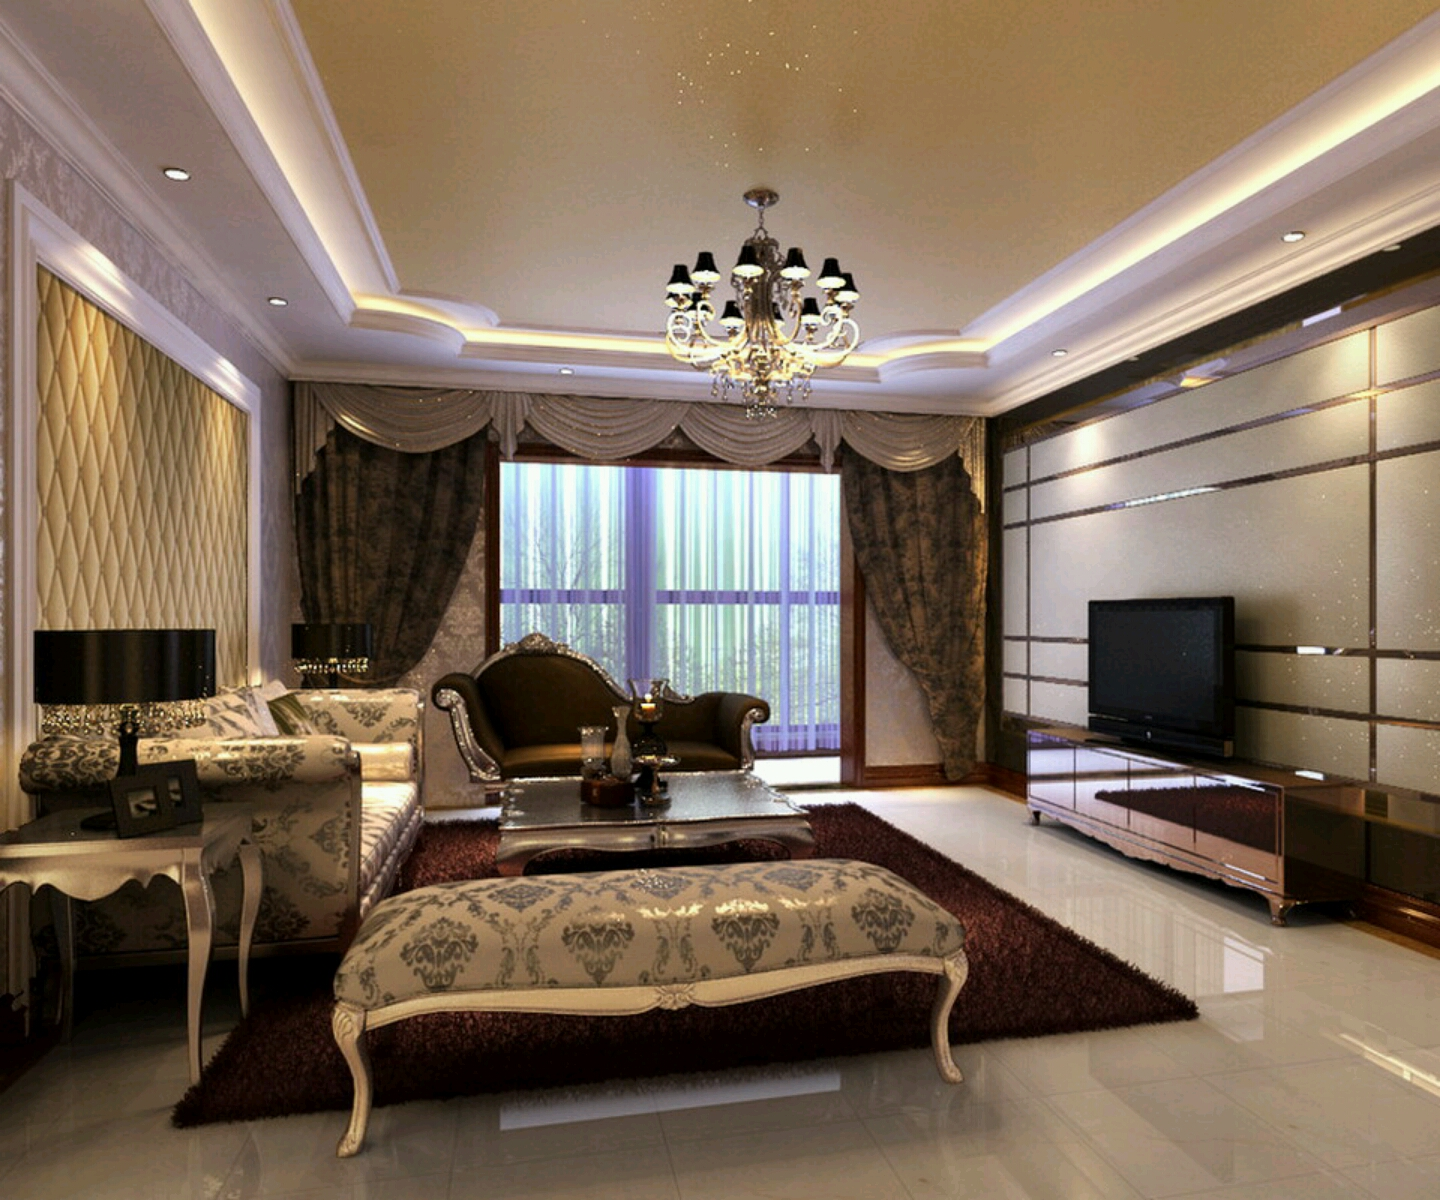 New home designs latest luxury homes interior decoration for Interior designs pictures